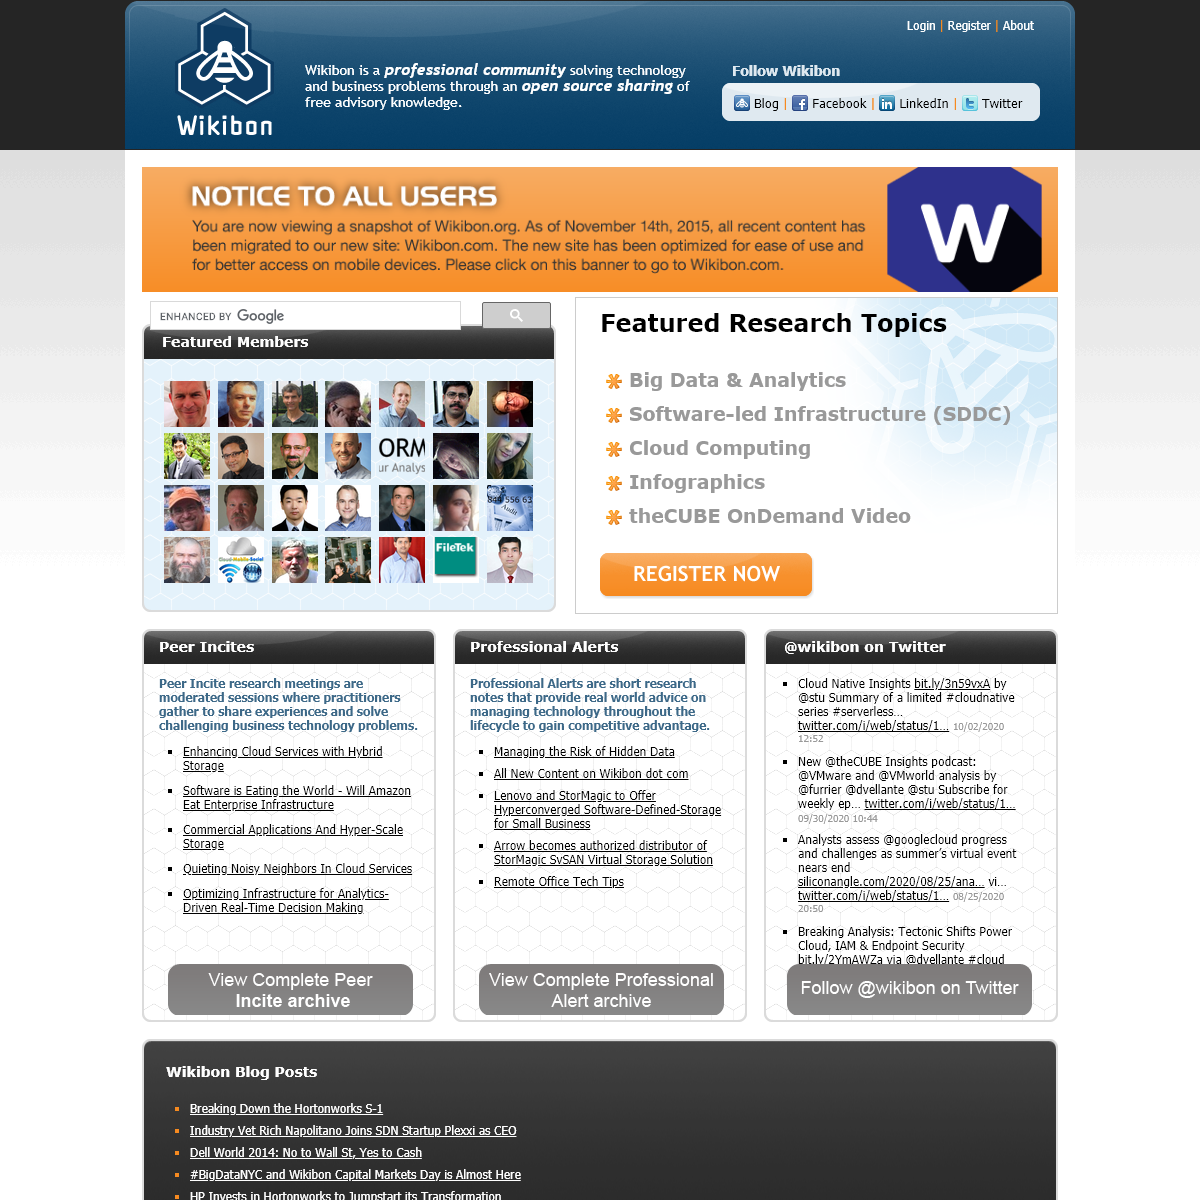 A Wiki for Sharing Technology & Business Knowledge - Wikibon